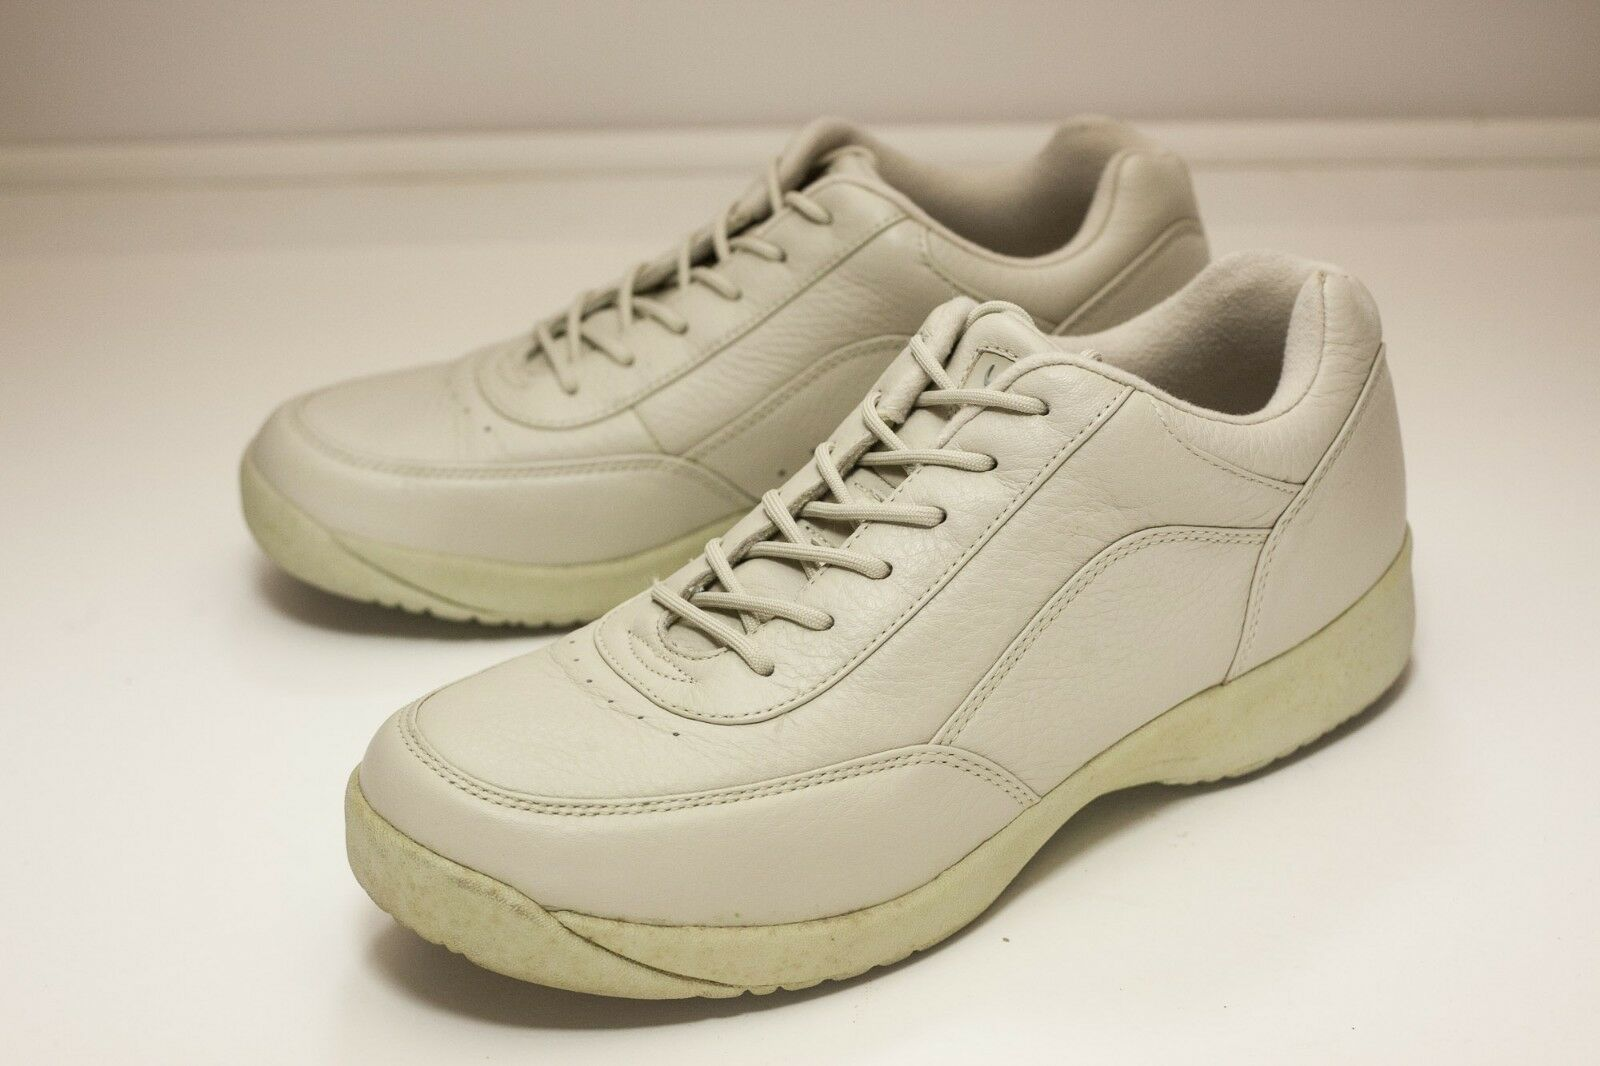 Supremes Softspots Size 10 Taupe Men's Walking shoes